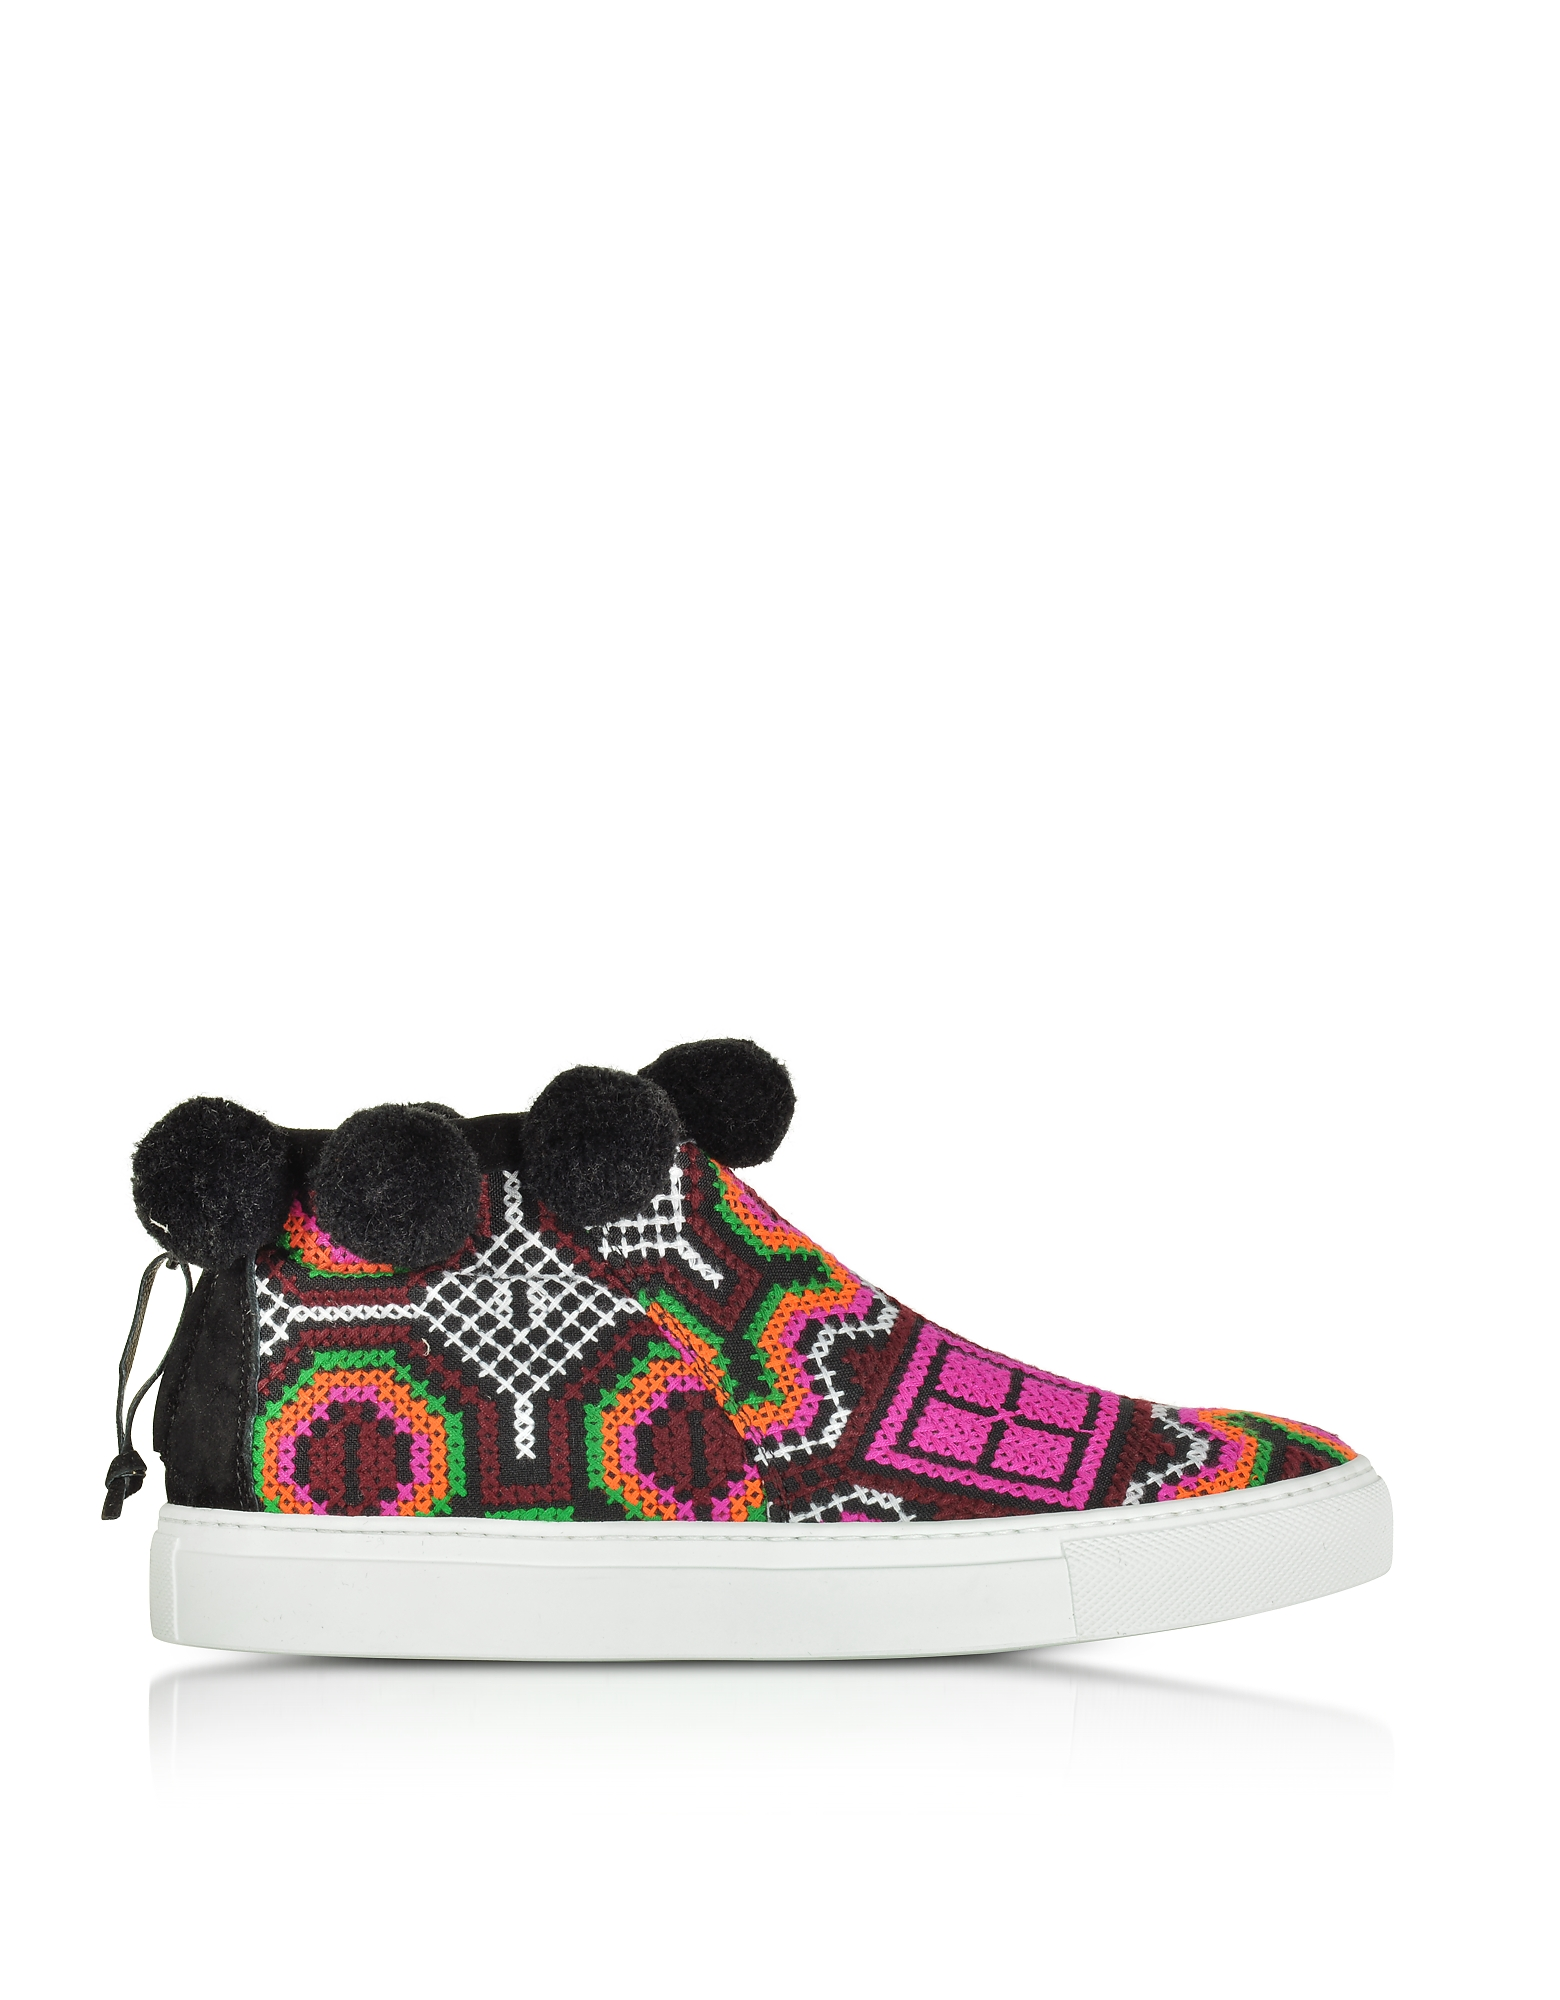 Joshua Sanders Shoes, Namibia Multicolor Fabric High Top Sneaker